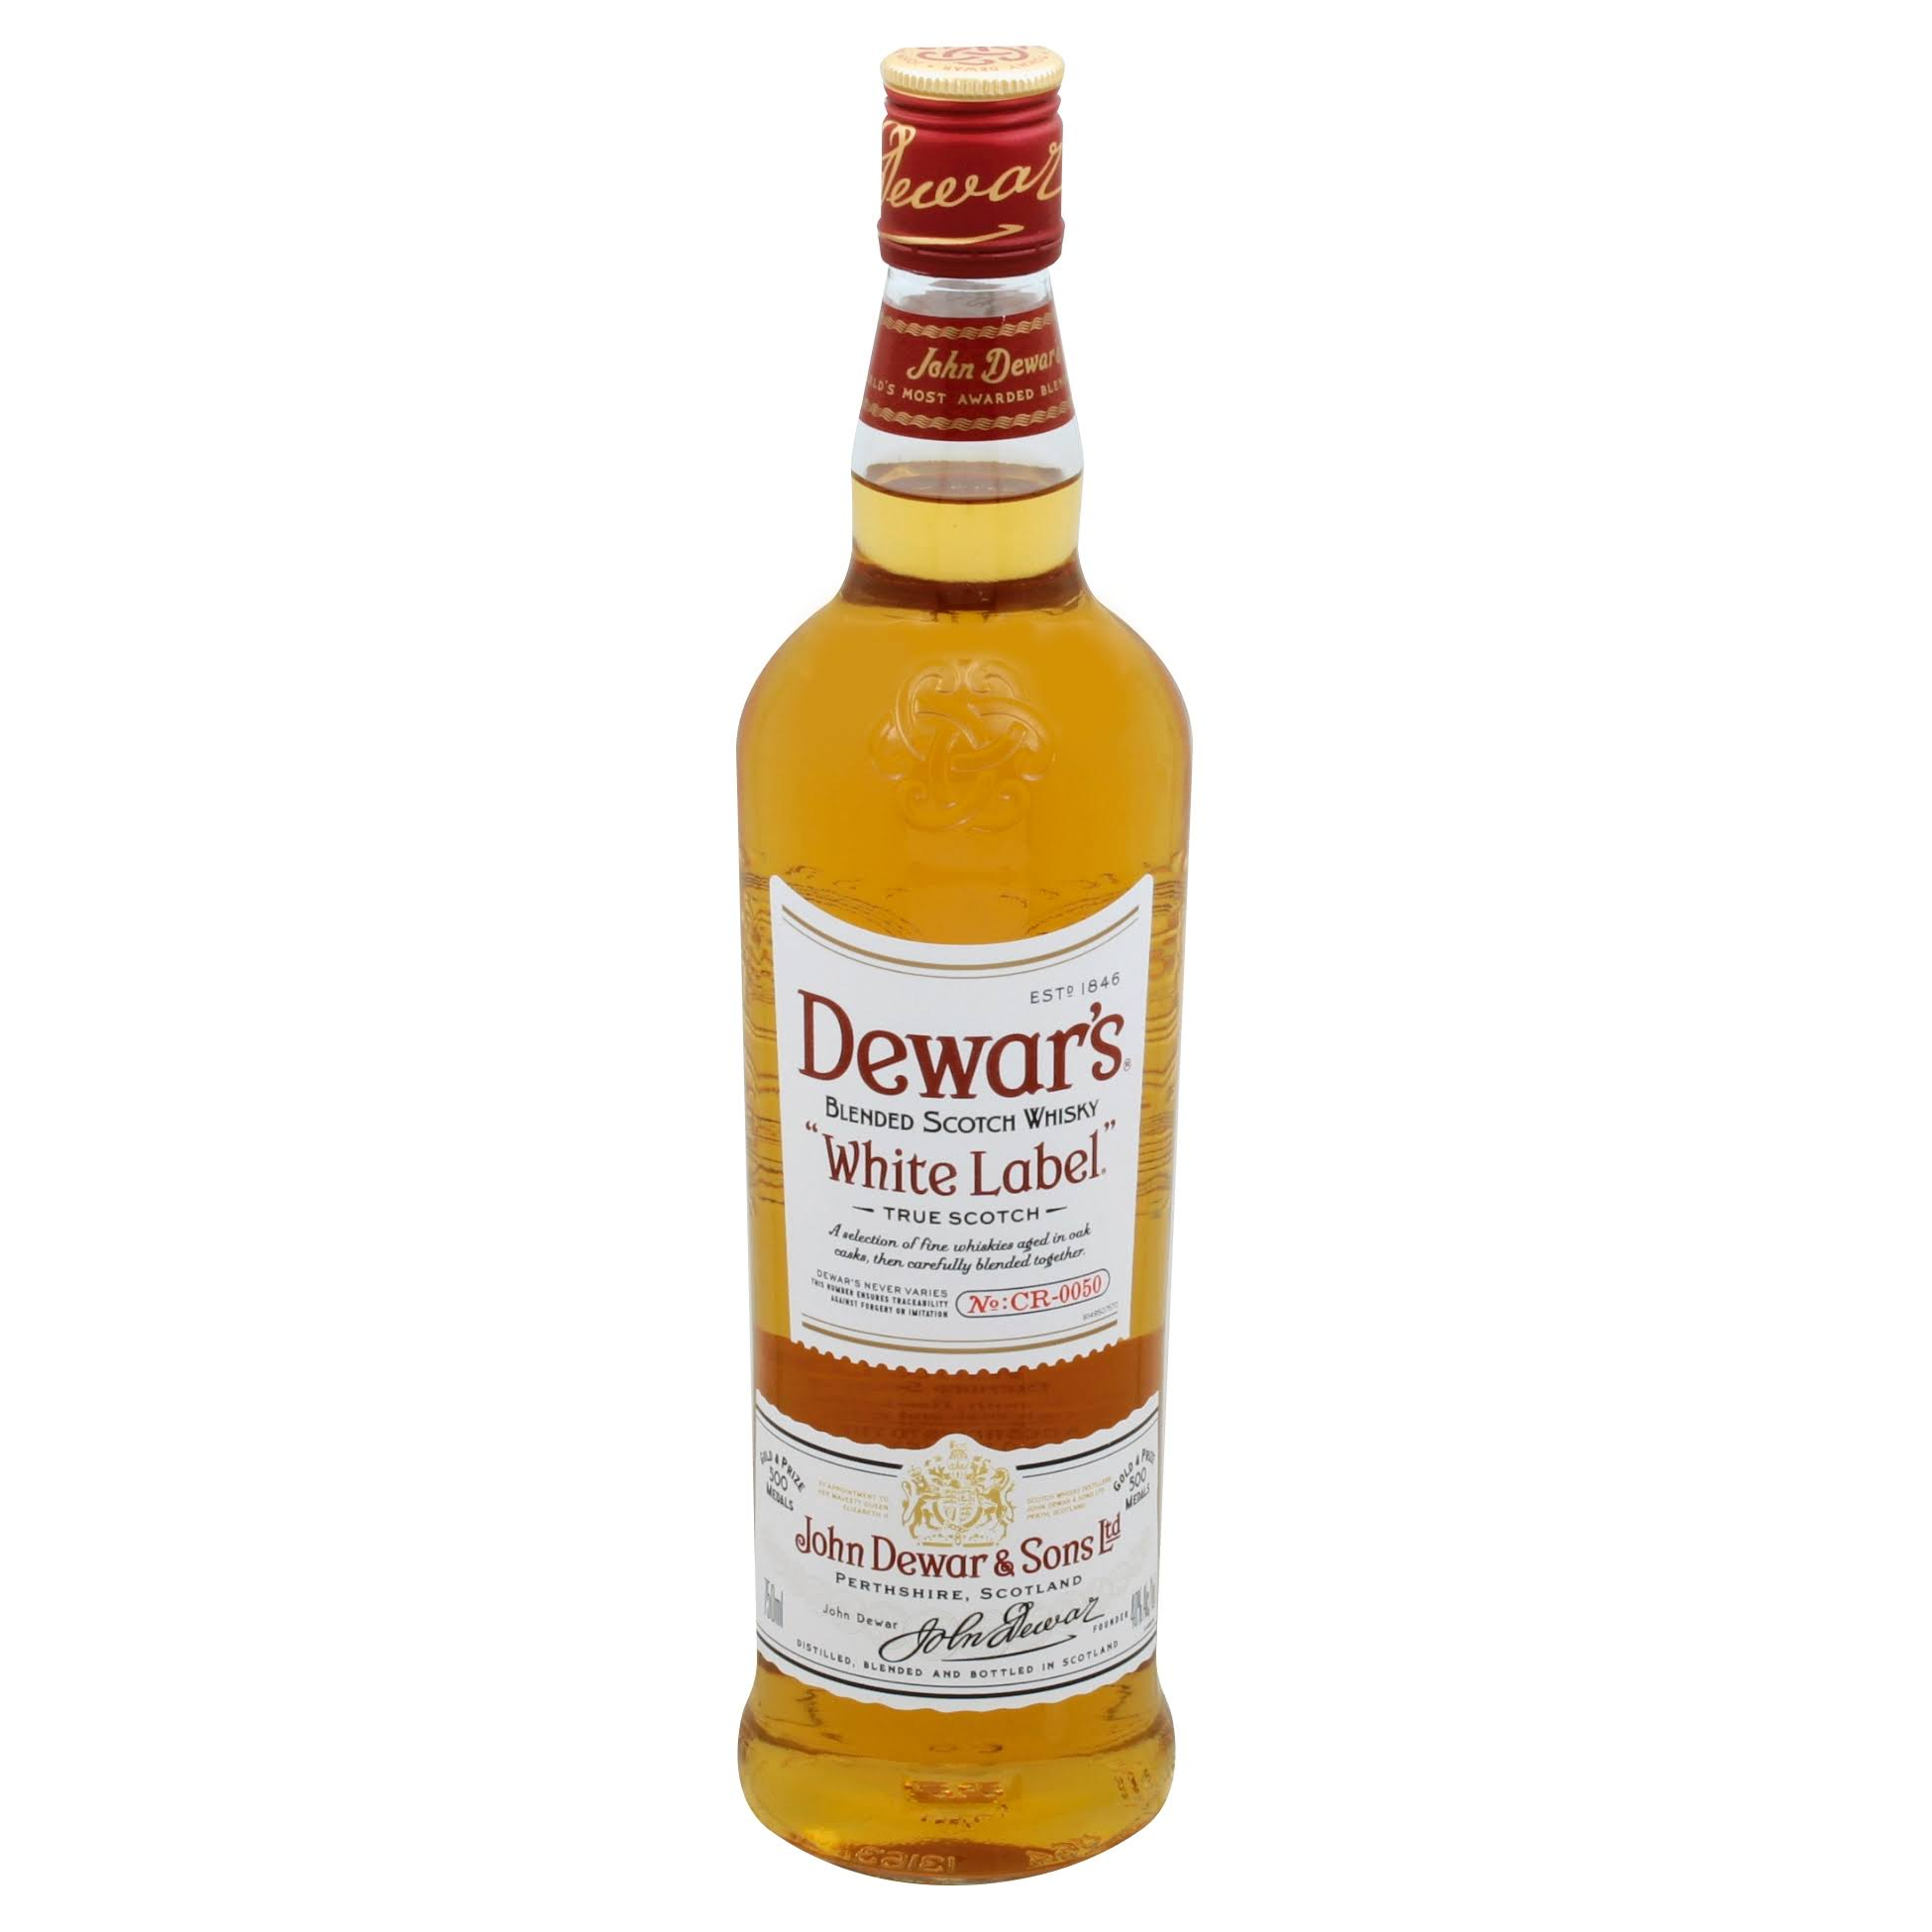 Dewars White Label Whisky, Scotch, Blended - 750 ml